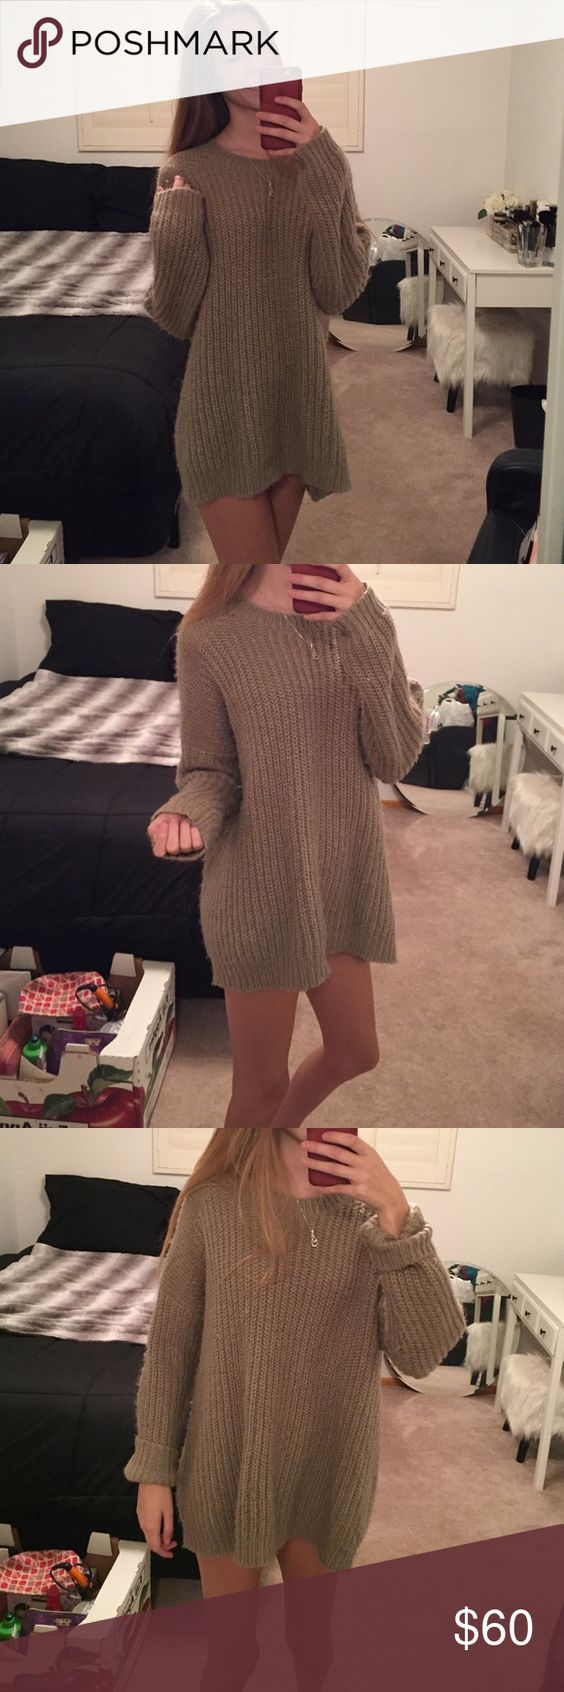 Oversized sweater Brand new oversized sweater. Super vintage and cute. Size M but I'm a XS and it gives it a cute oversized cozy look. No tag it was itchy but bought for $120 in Santa Monica. Will go cheaper on 🅿️🅿️ Brandy Melville Sweaters Crew & Scoop Necks